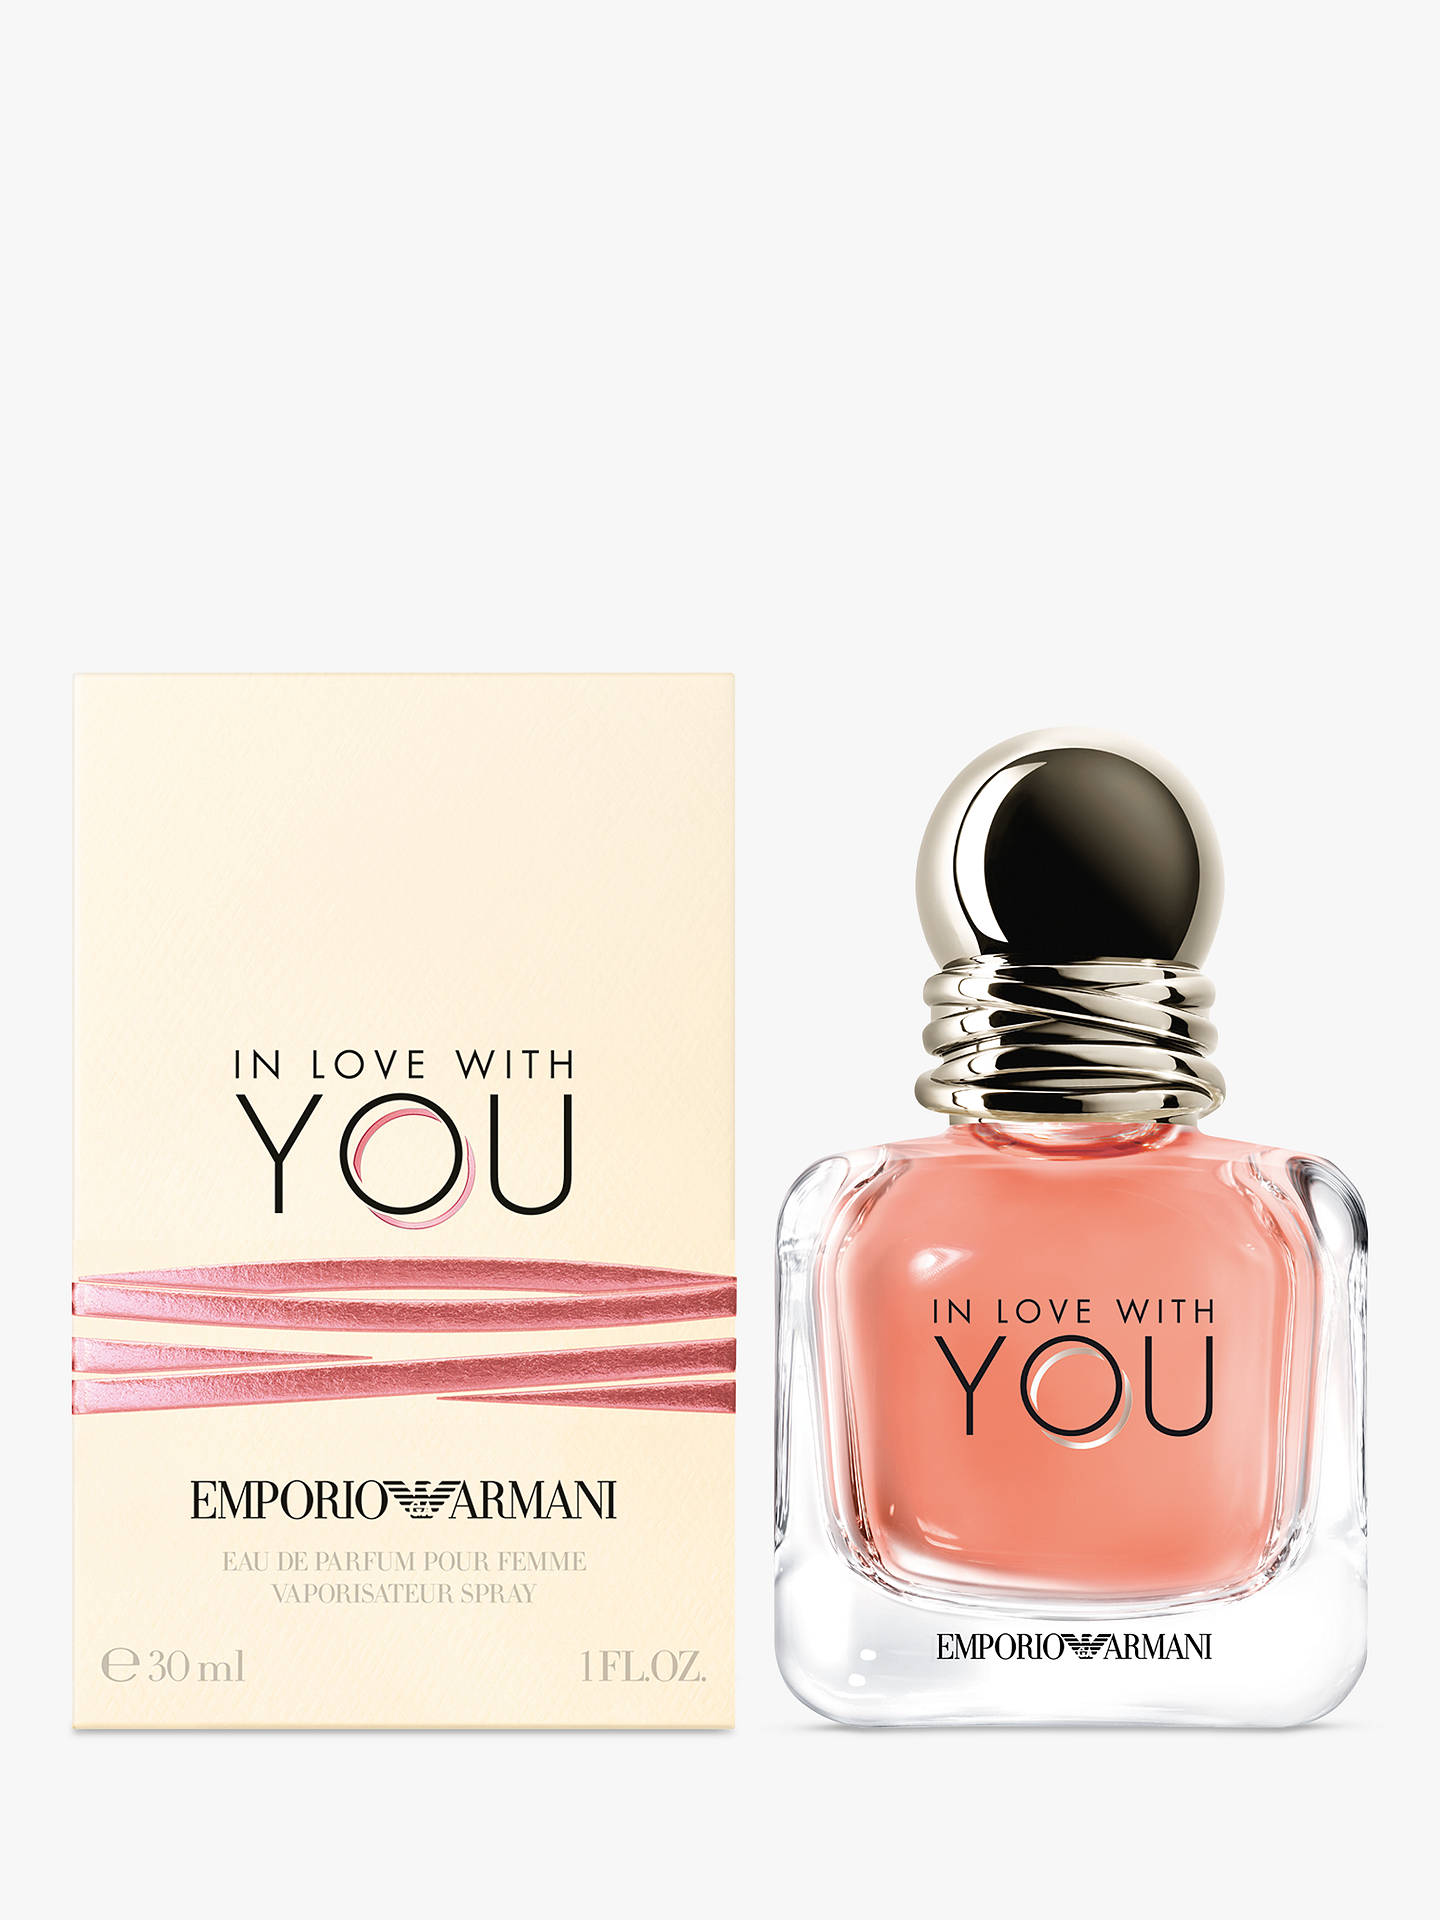 Emporio Armani In Love With You Eau De Parfum At John Lewis Partners